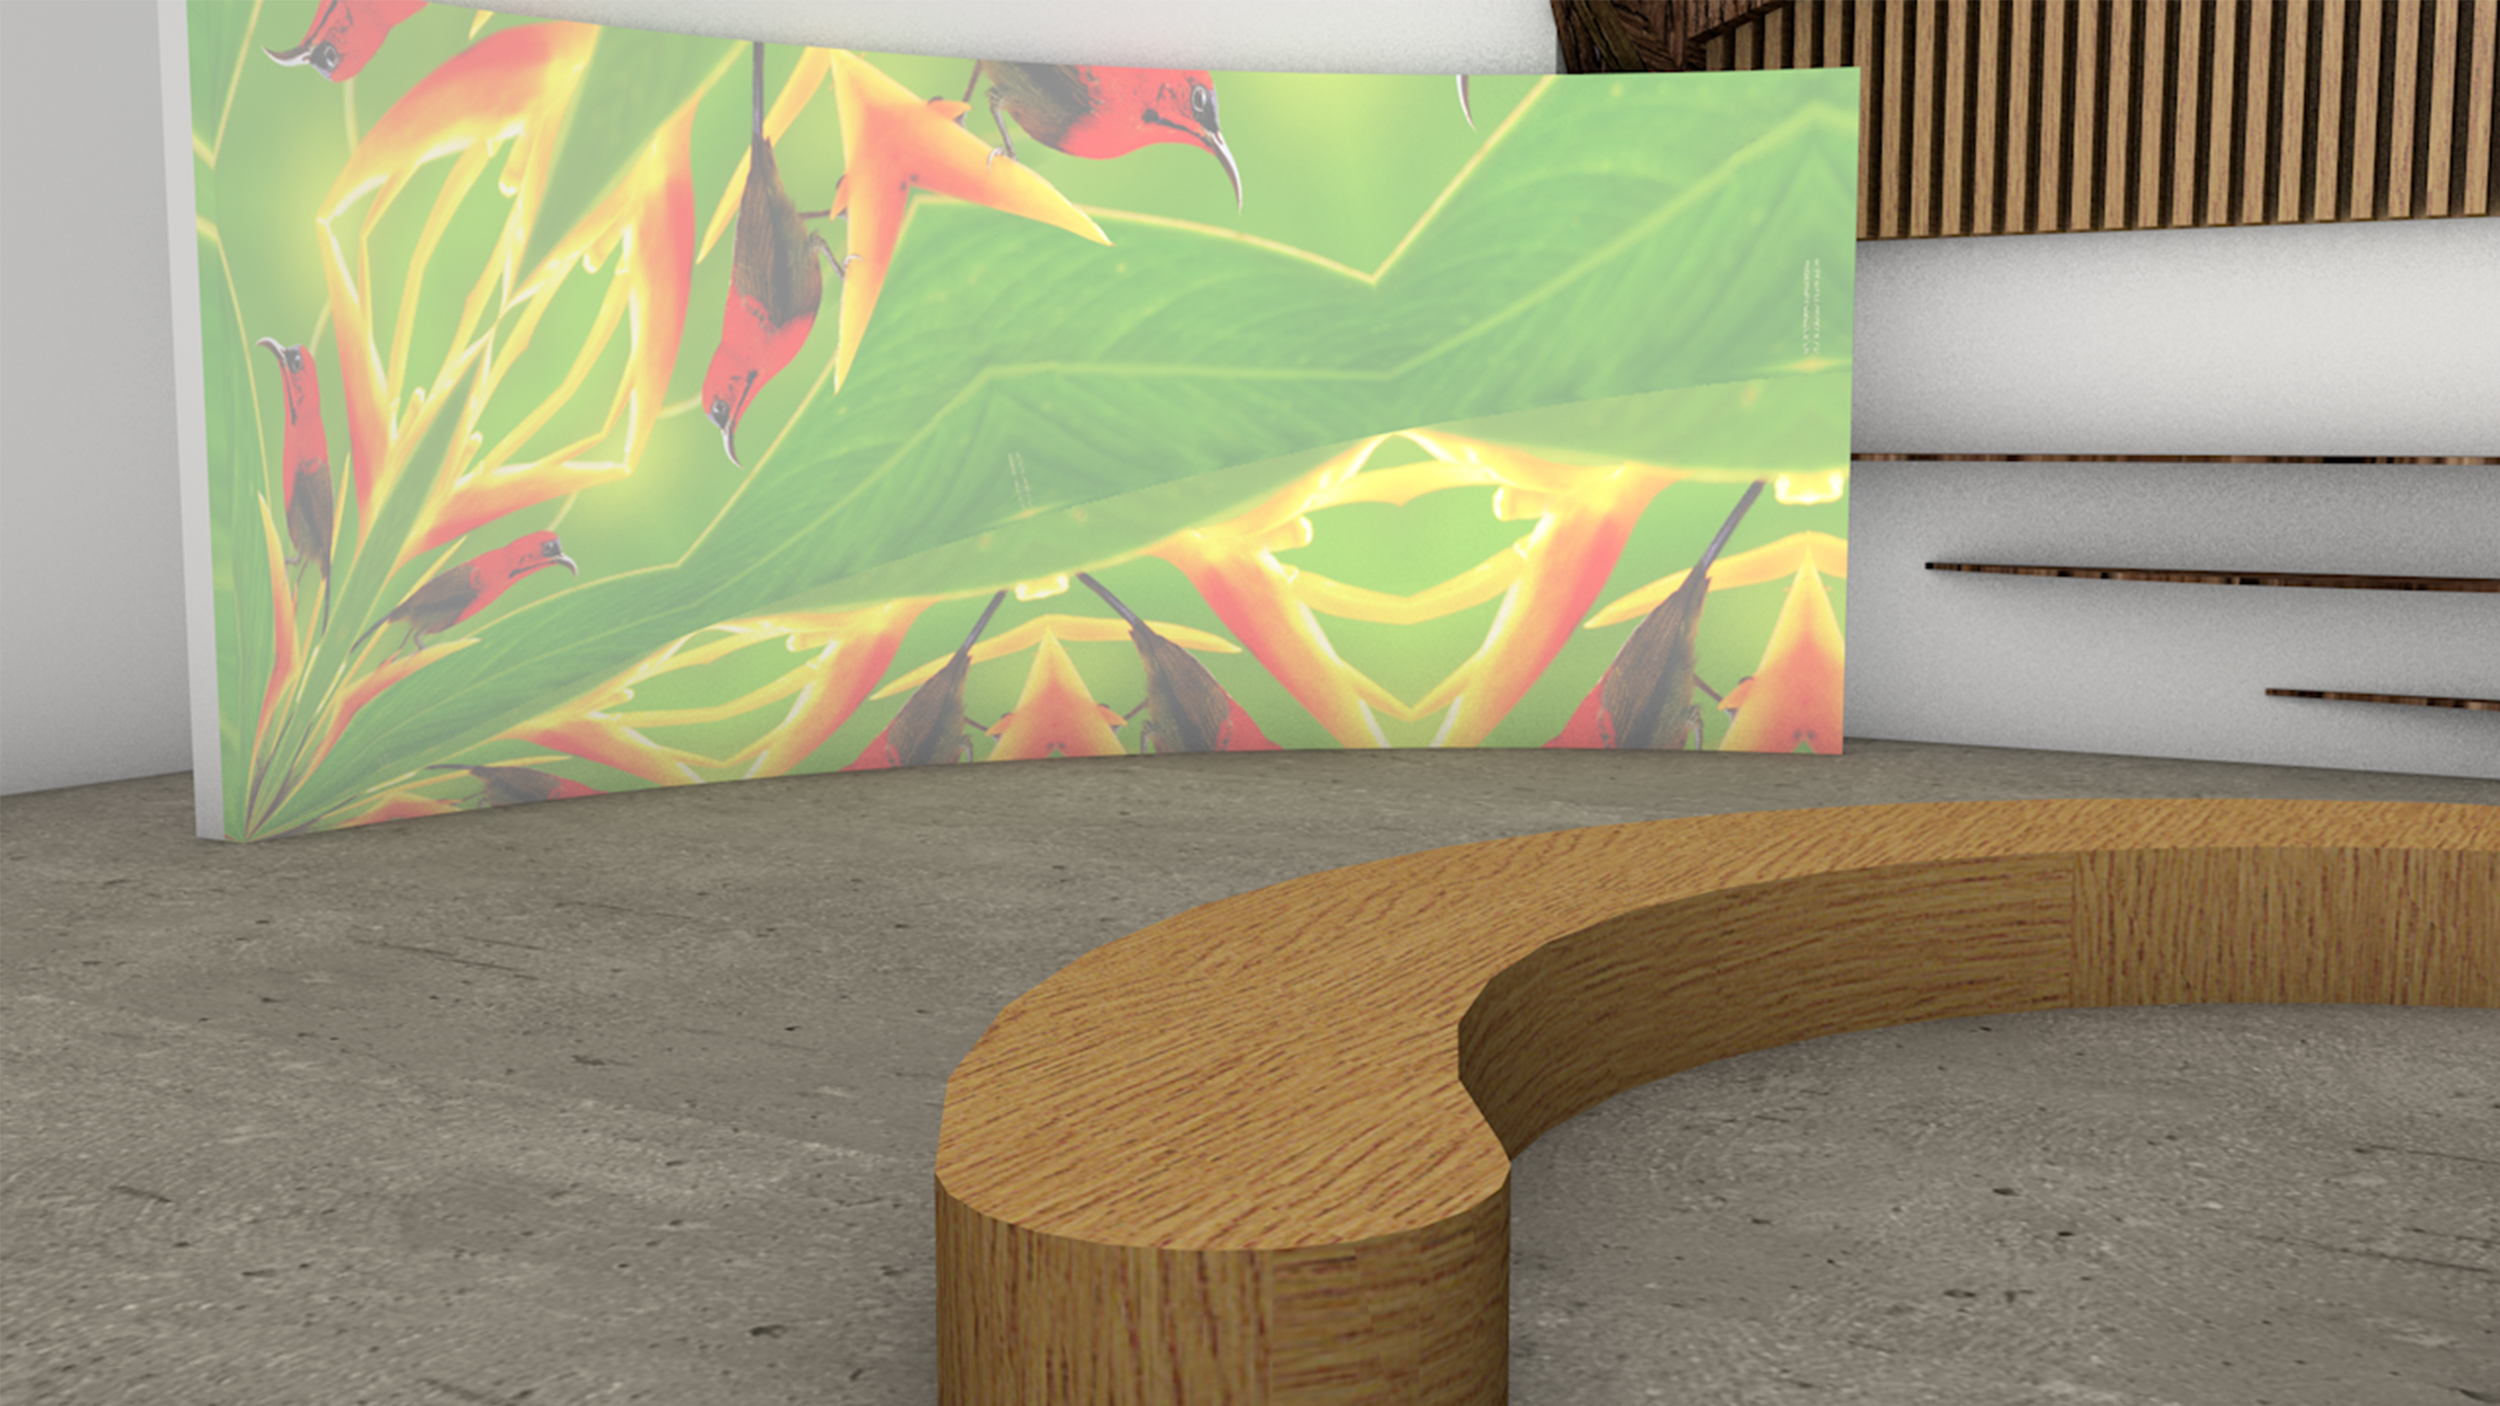 Benches around the tree allows customers to sit and catch the glimpse of 'Live in the Pause' moment within the store.